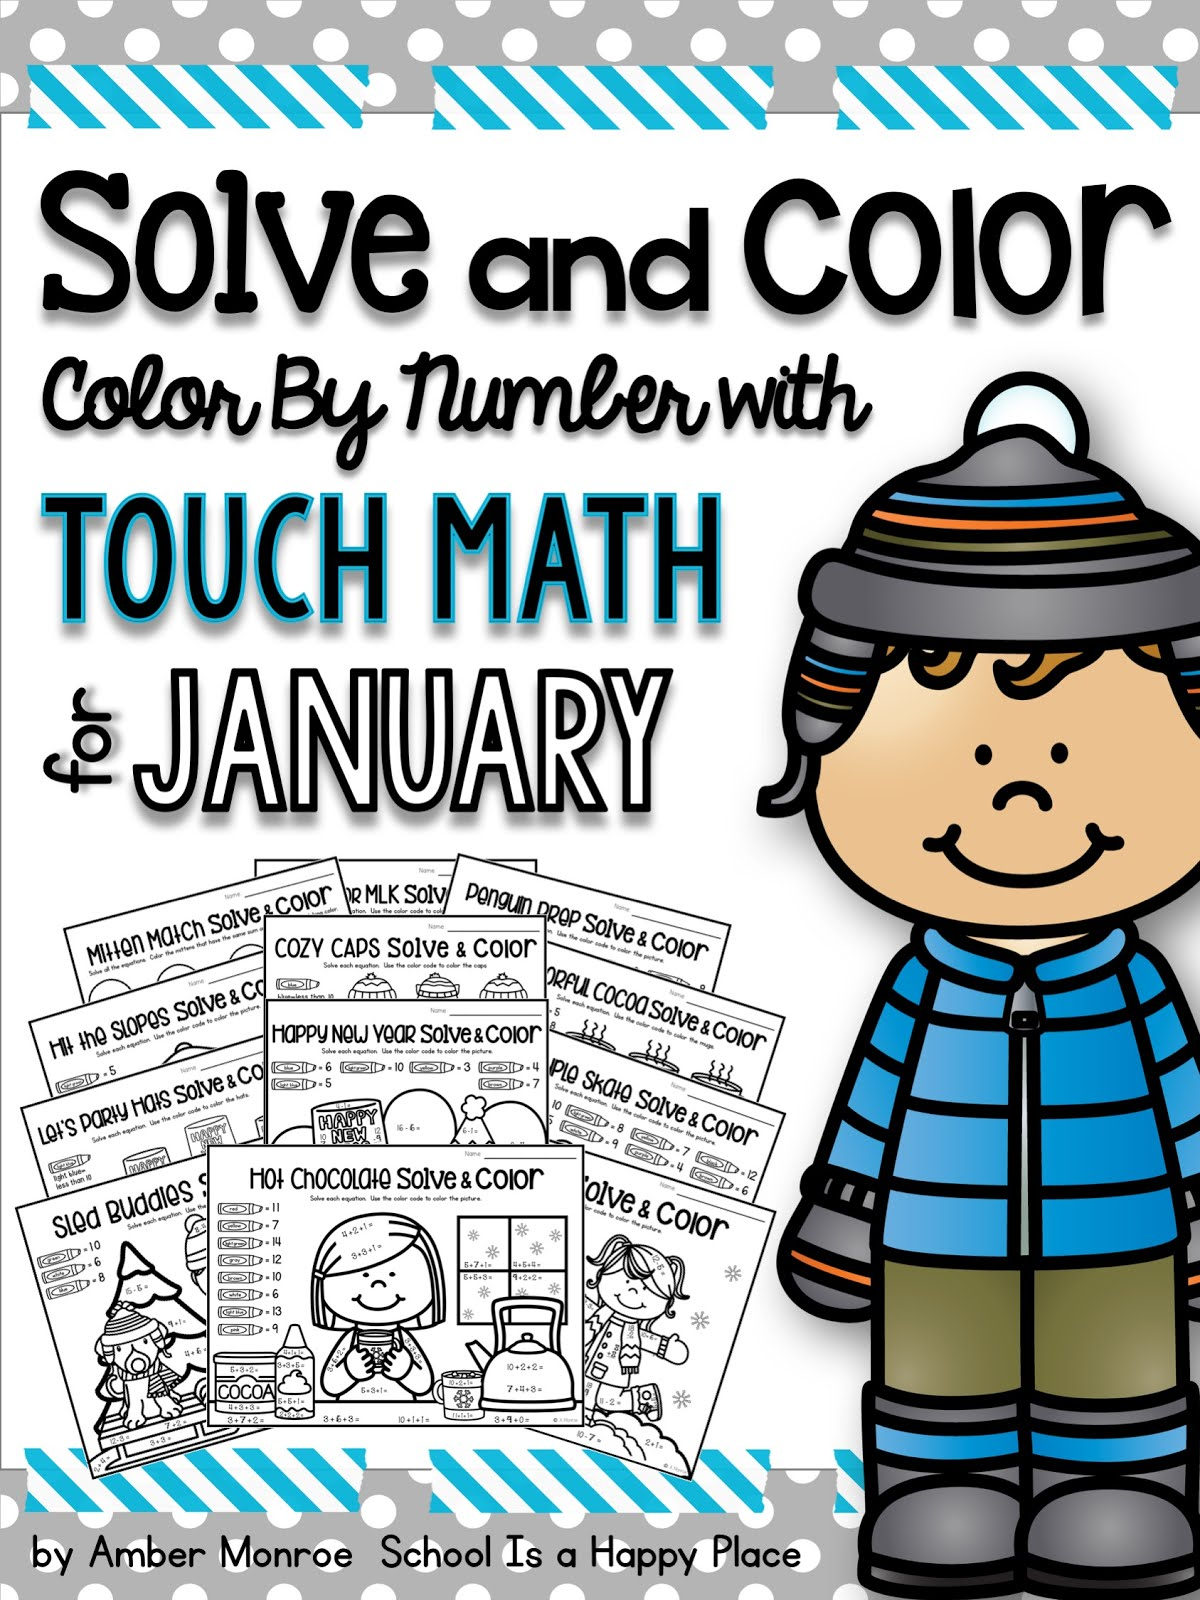 Touch Math for January